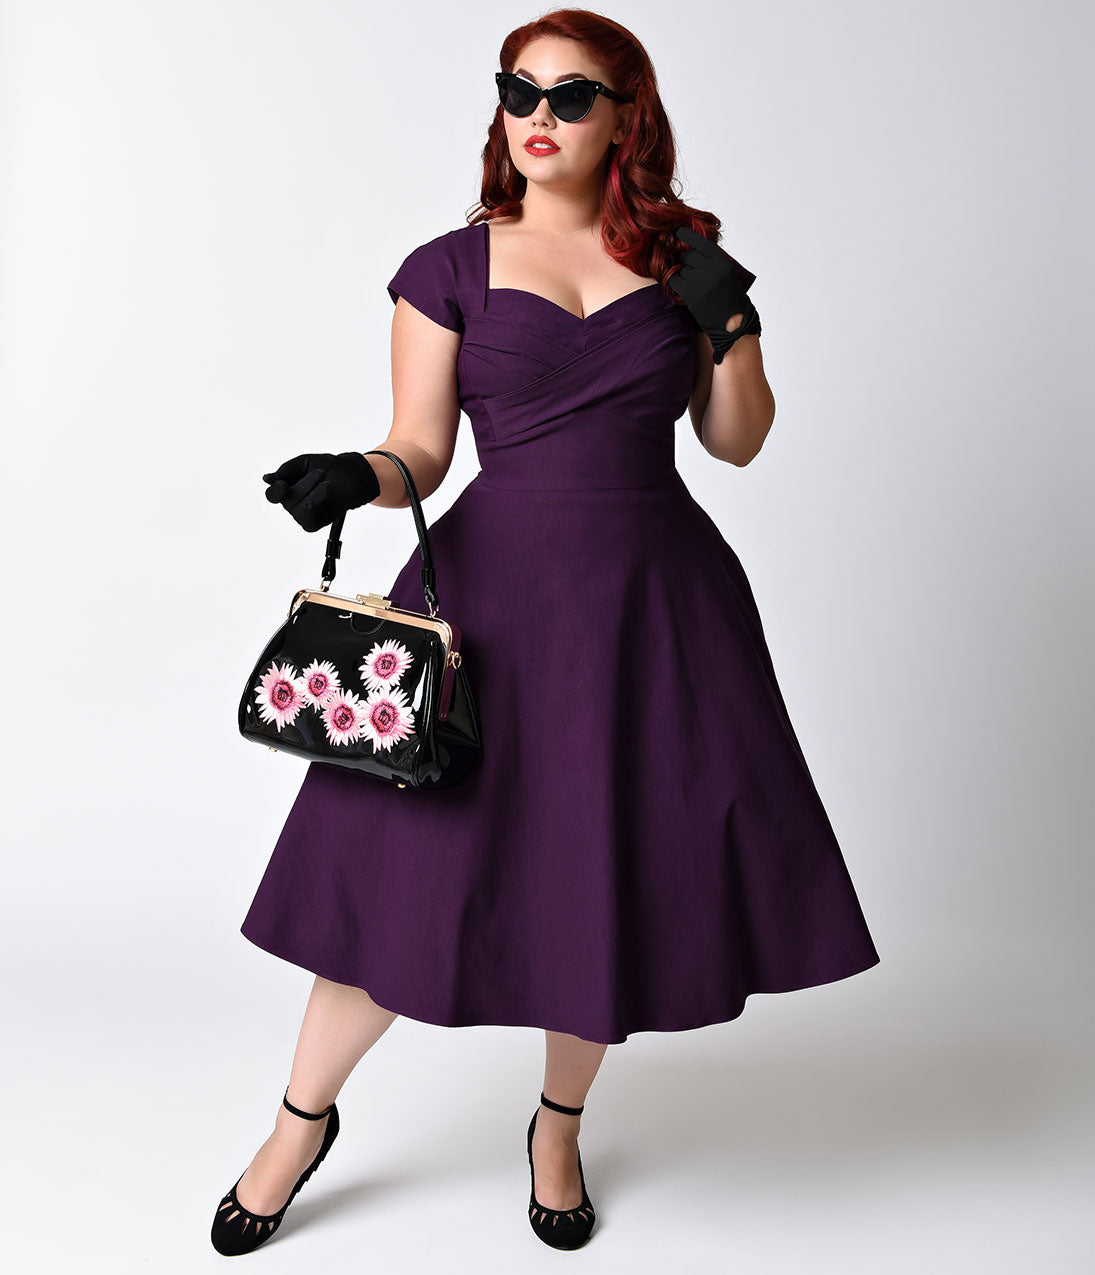 60s 70s Plus Size Dresses, Clothing, Costumes Stop Staring Plus Size Mad Style Eggplant Cap Sleeve Swing Dress $172.00 AT vintagedancer.com